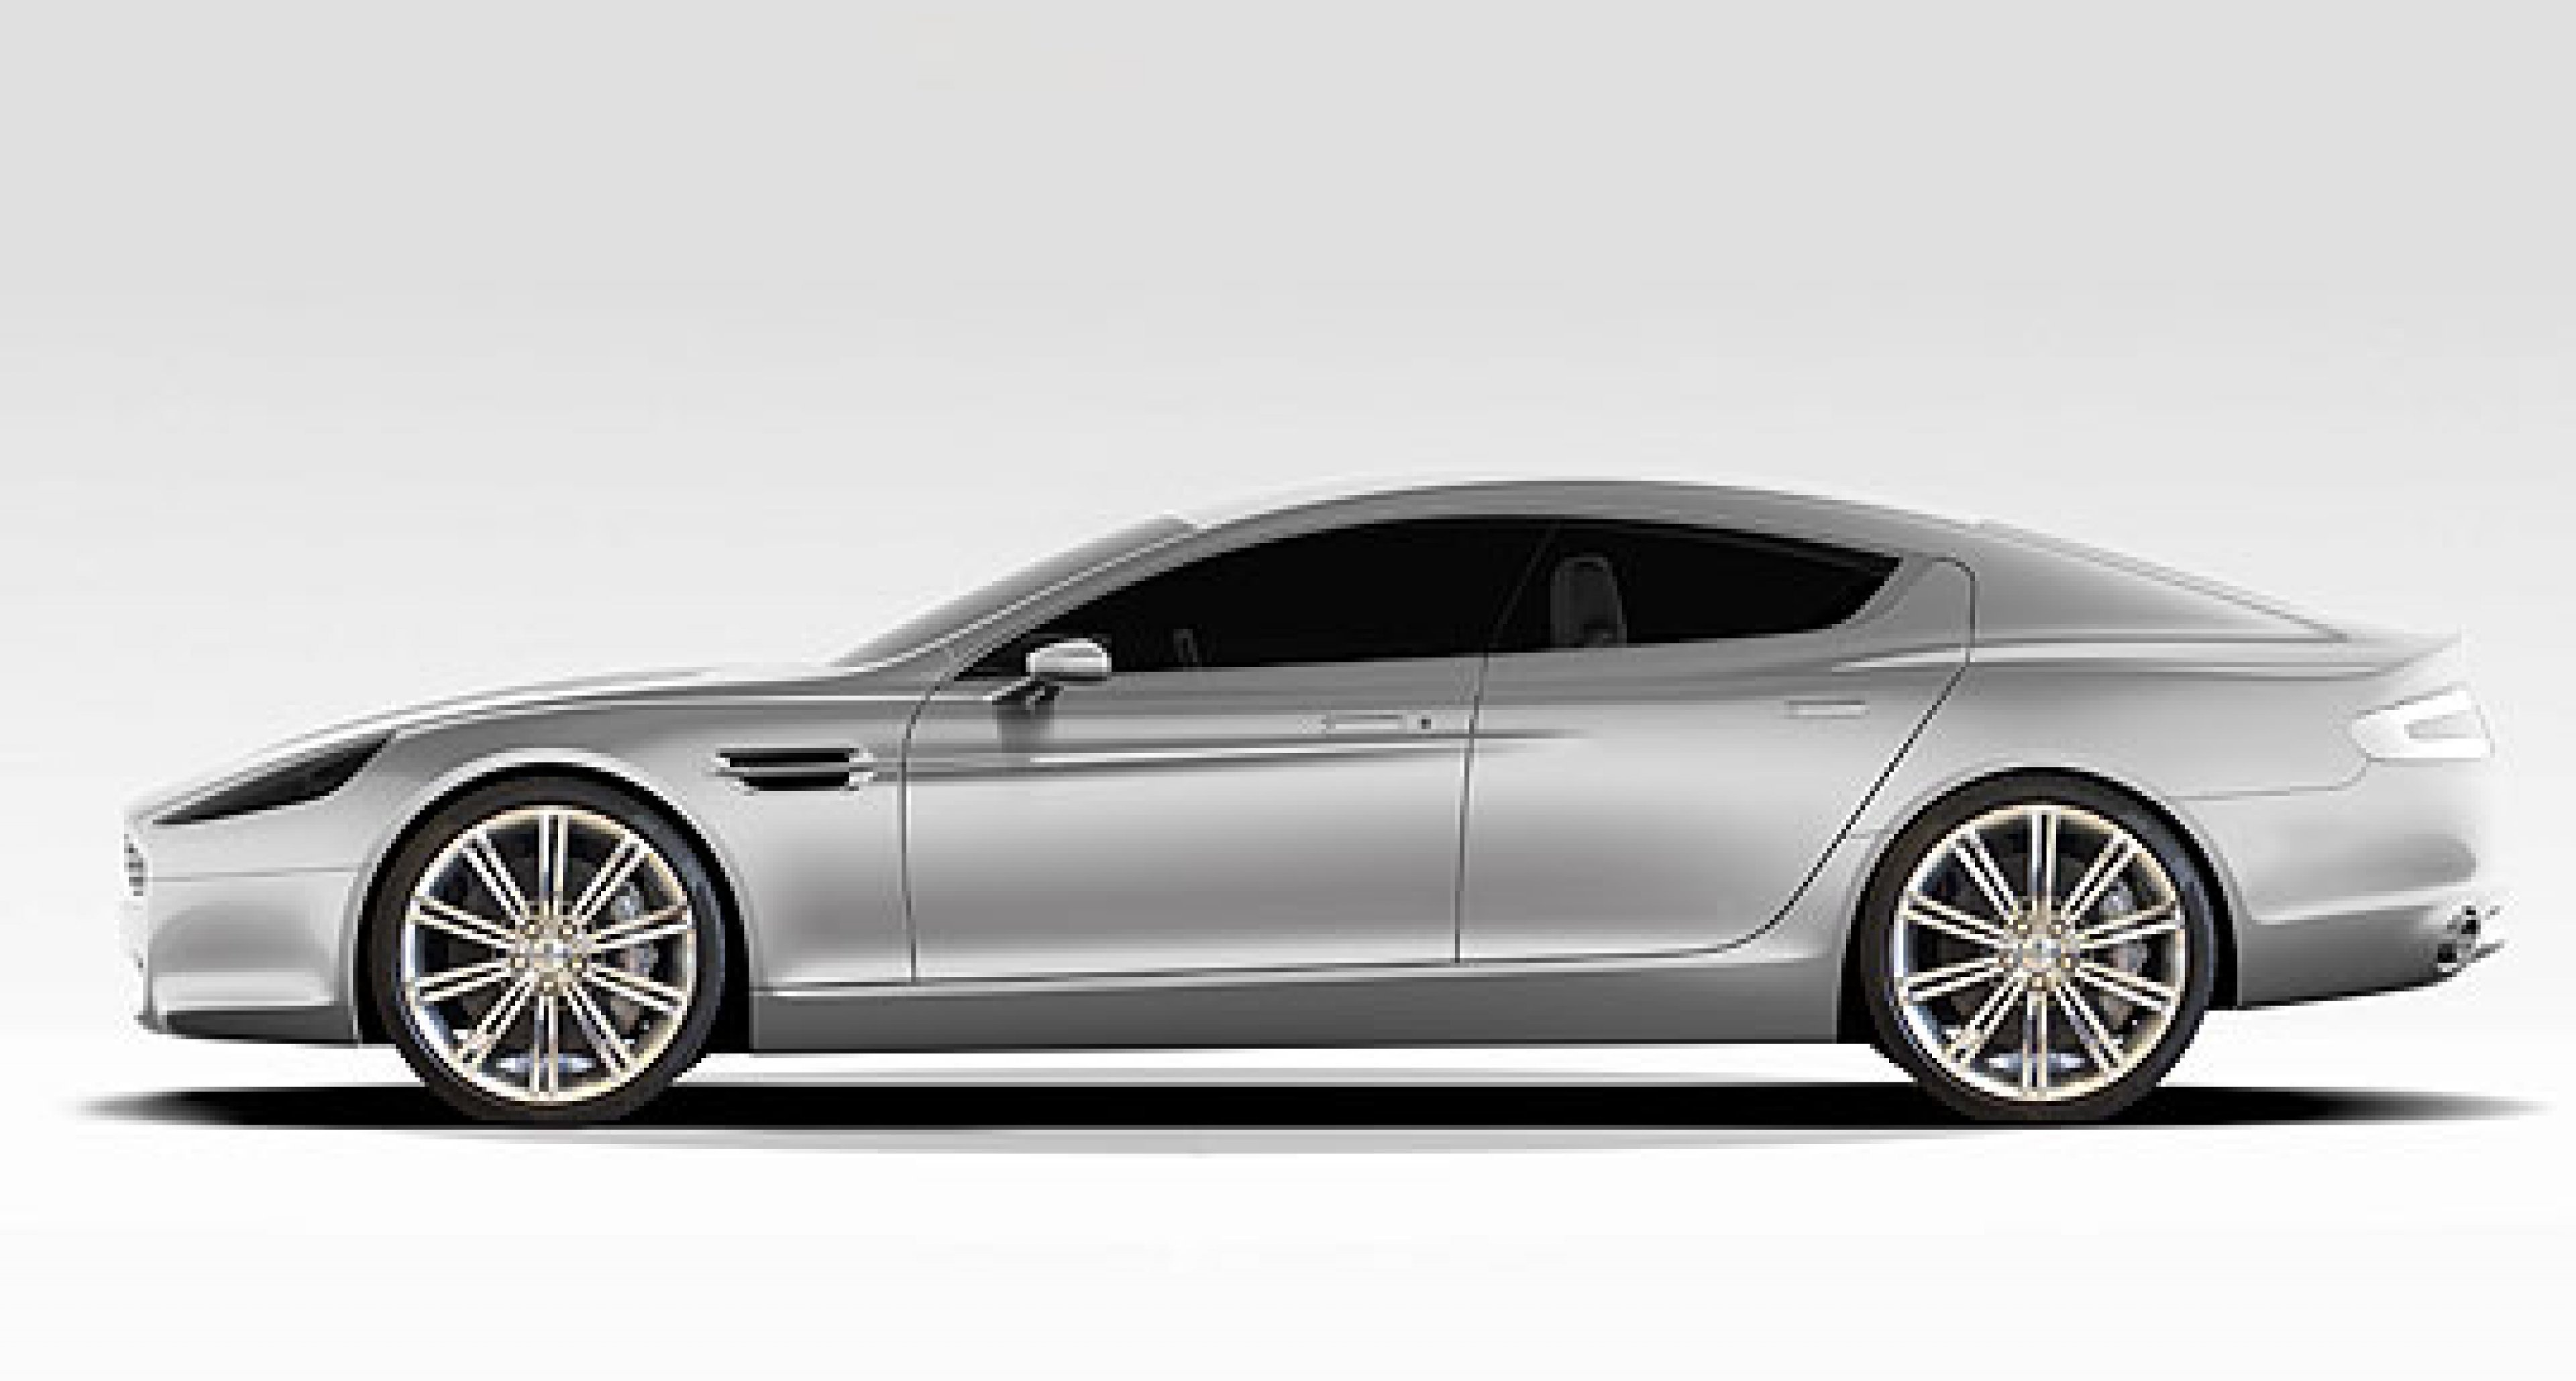 Aston Martin Rapide: Ready to Go in 2009